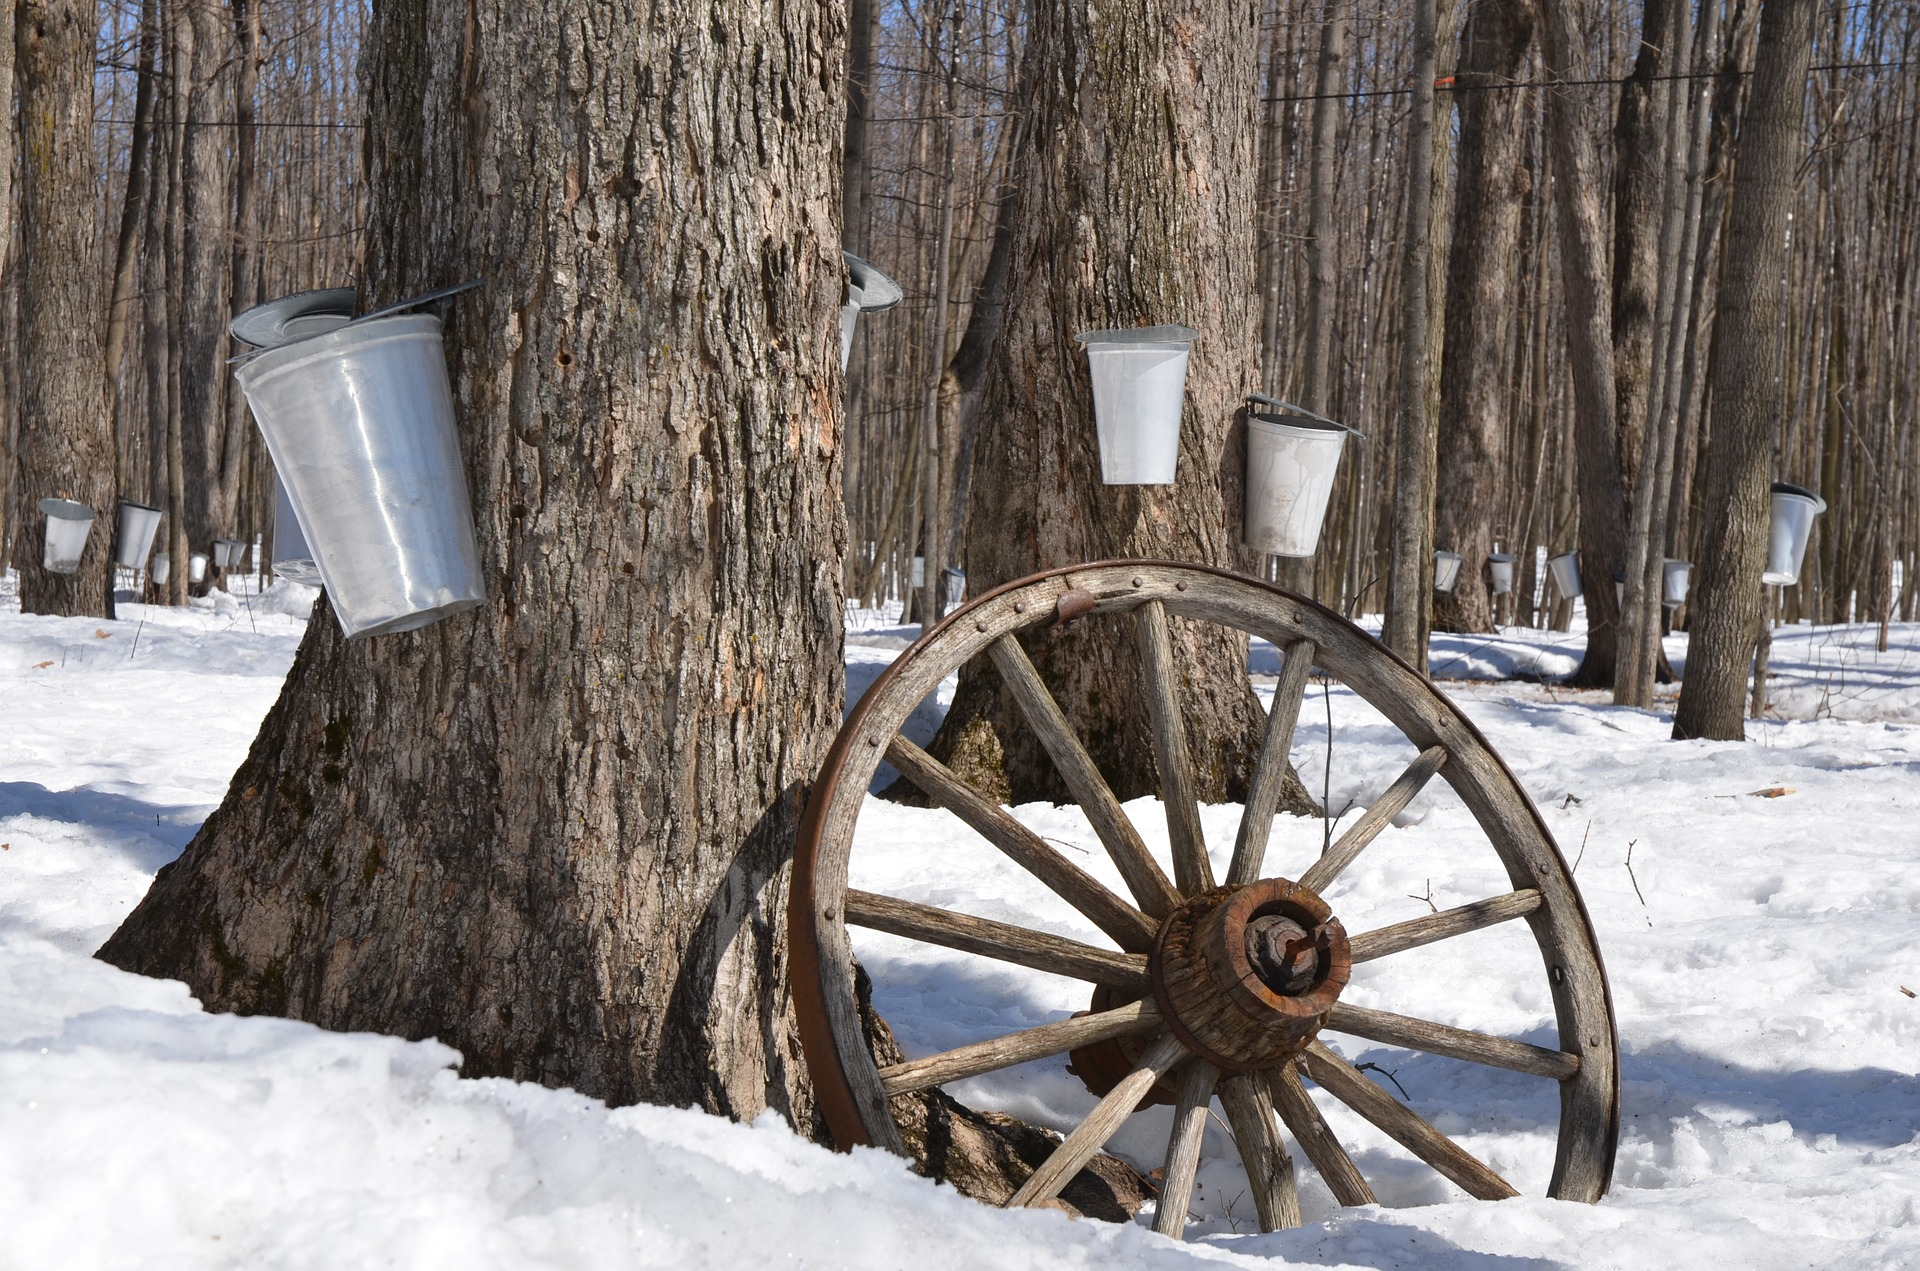 maple-syrup-1169896_1920.jpg